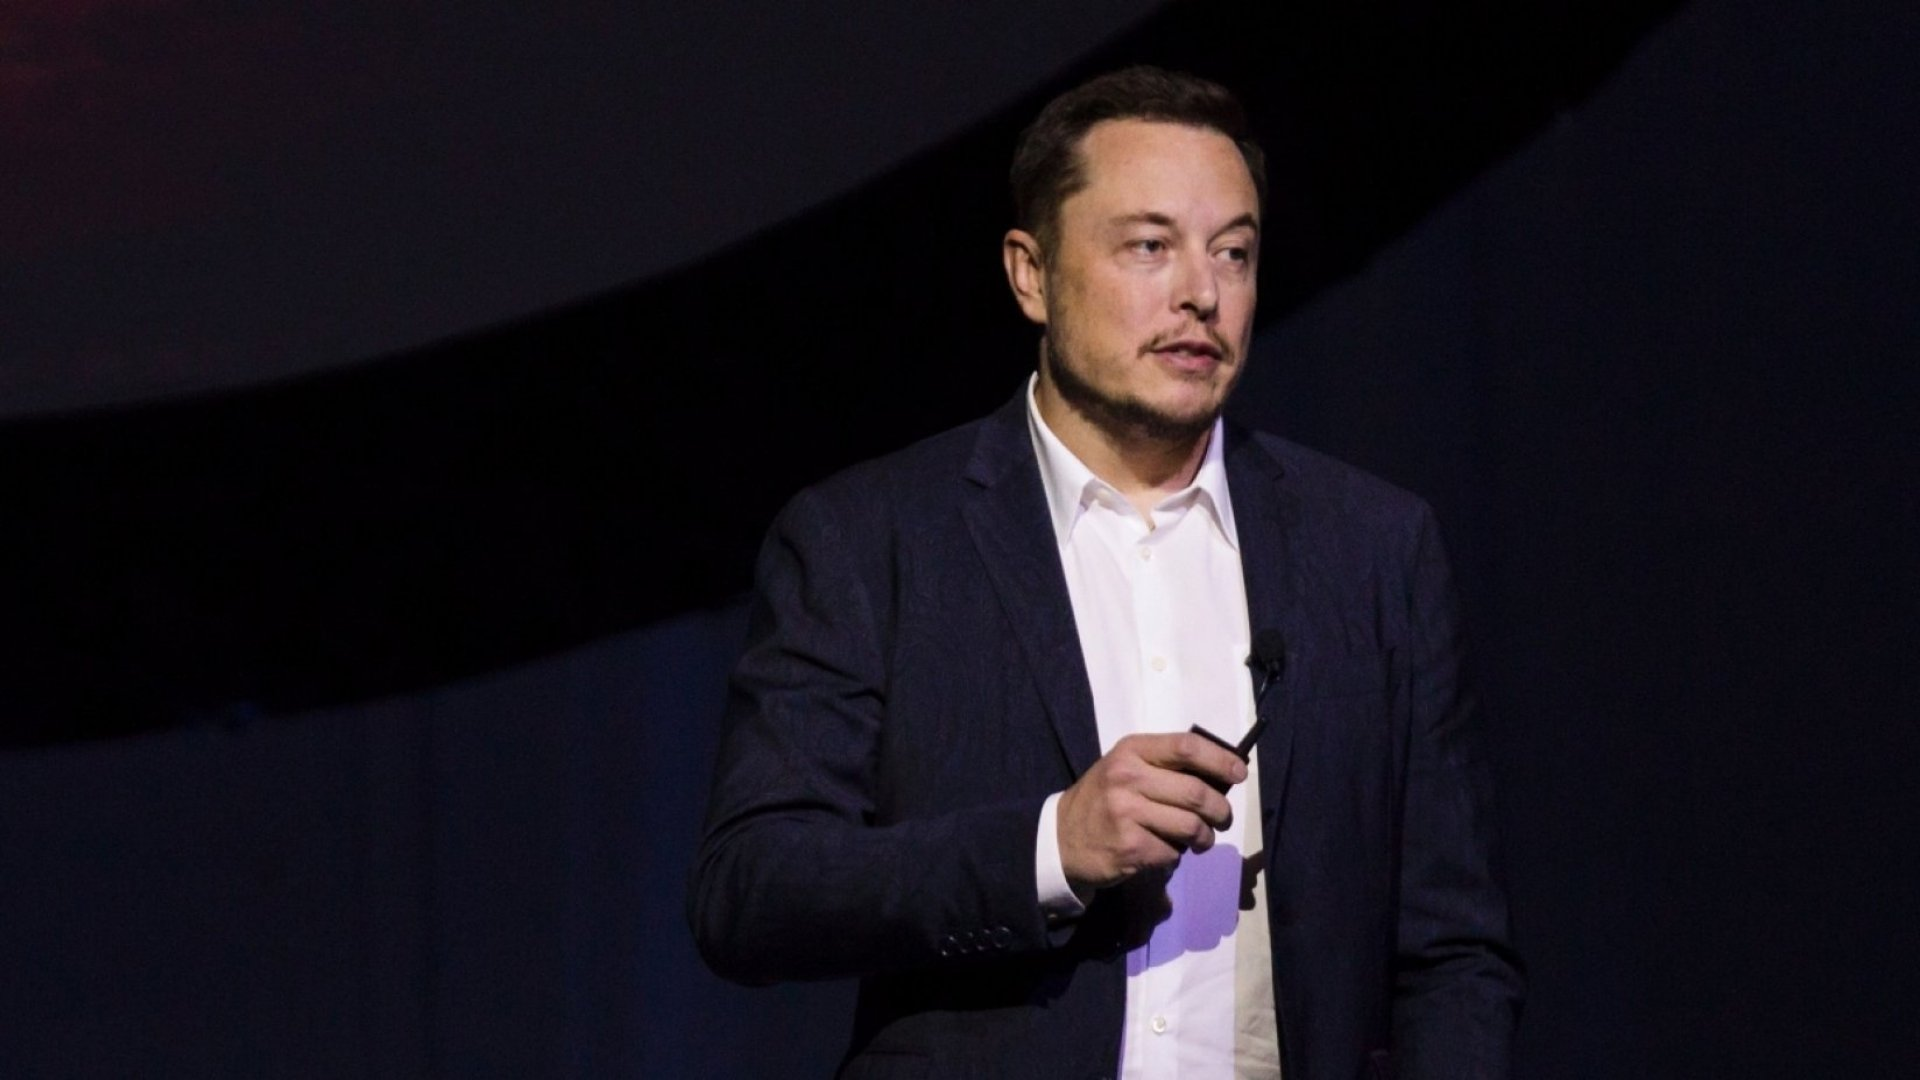 Elon Musk's Idea for a 'Boring Company' to Prevent Traffic Jams Is Anything But